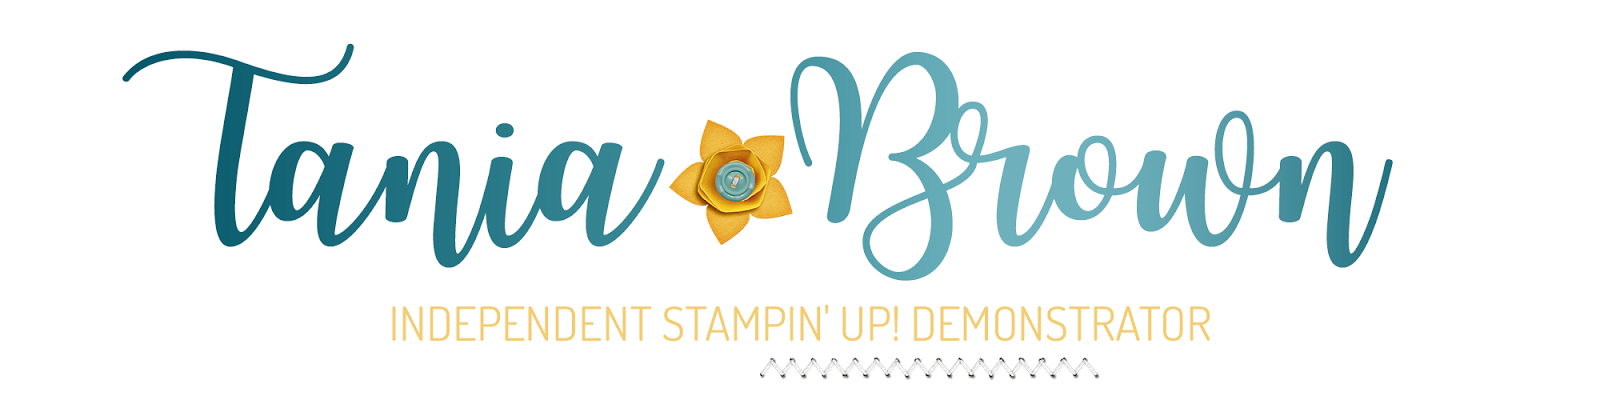 Tania Brown - Independent Stampin' Up! Demonstrator